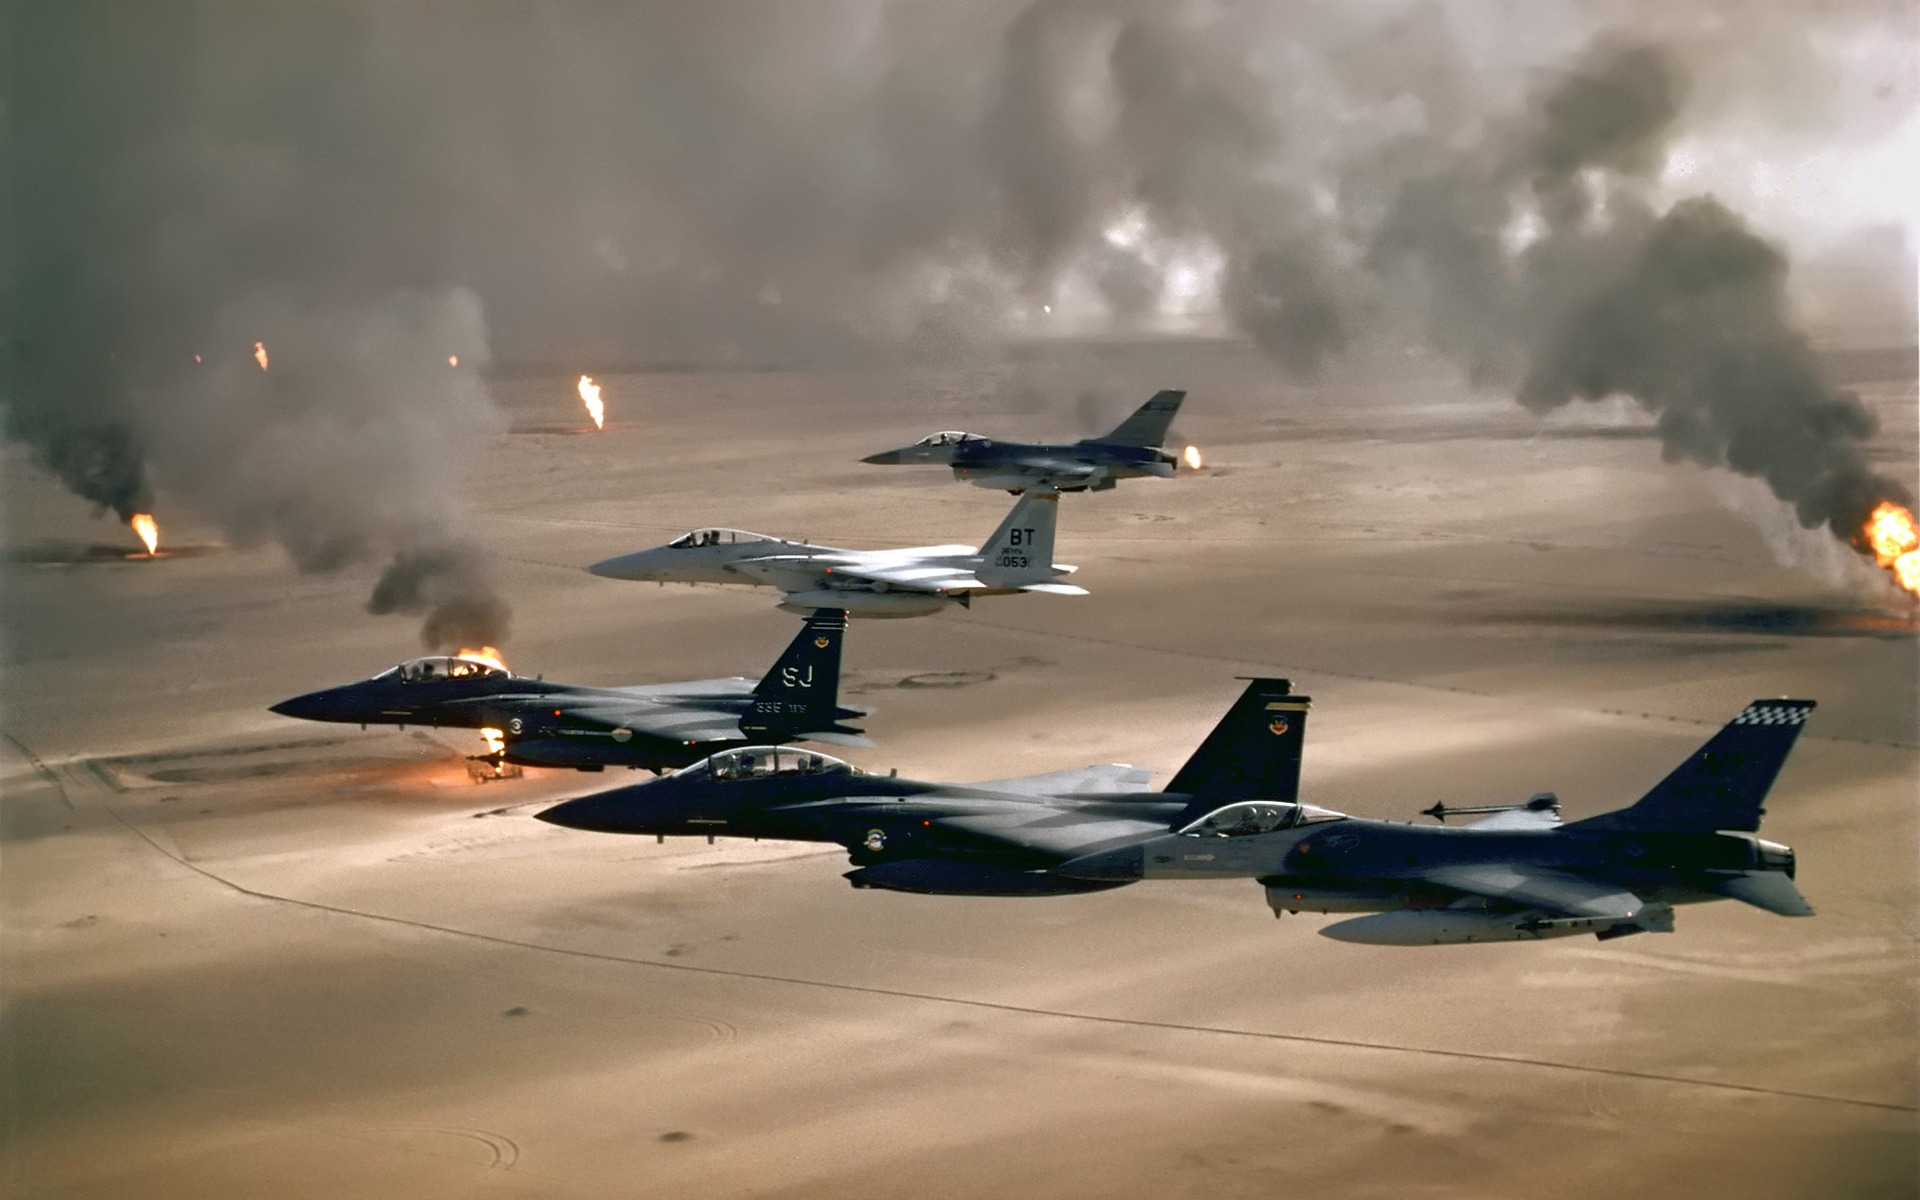 desert storm wallpaper military aircrafts planes wallpapers in jpg